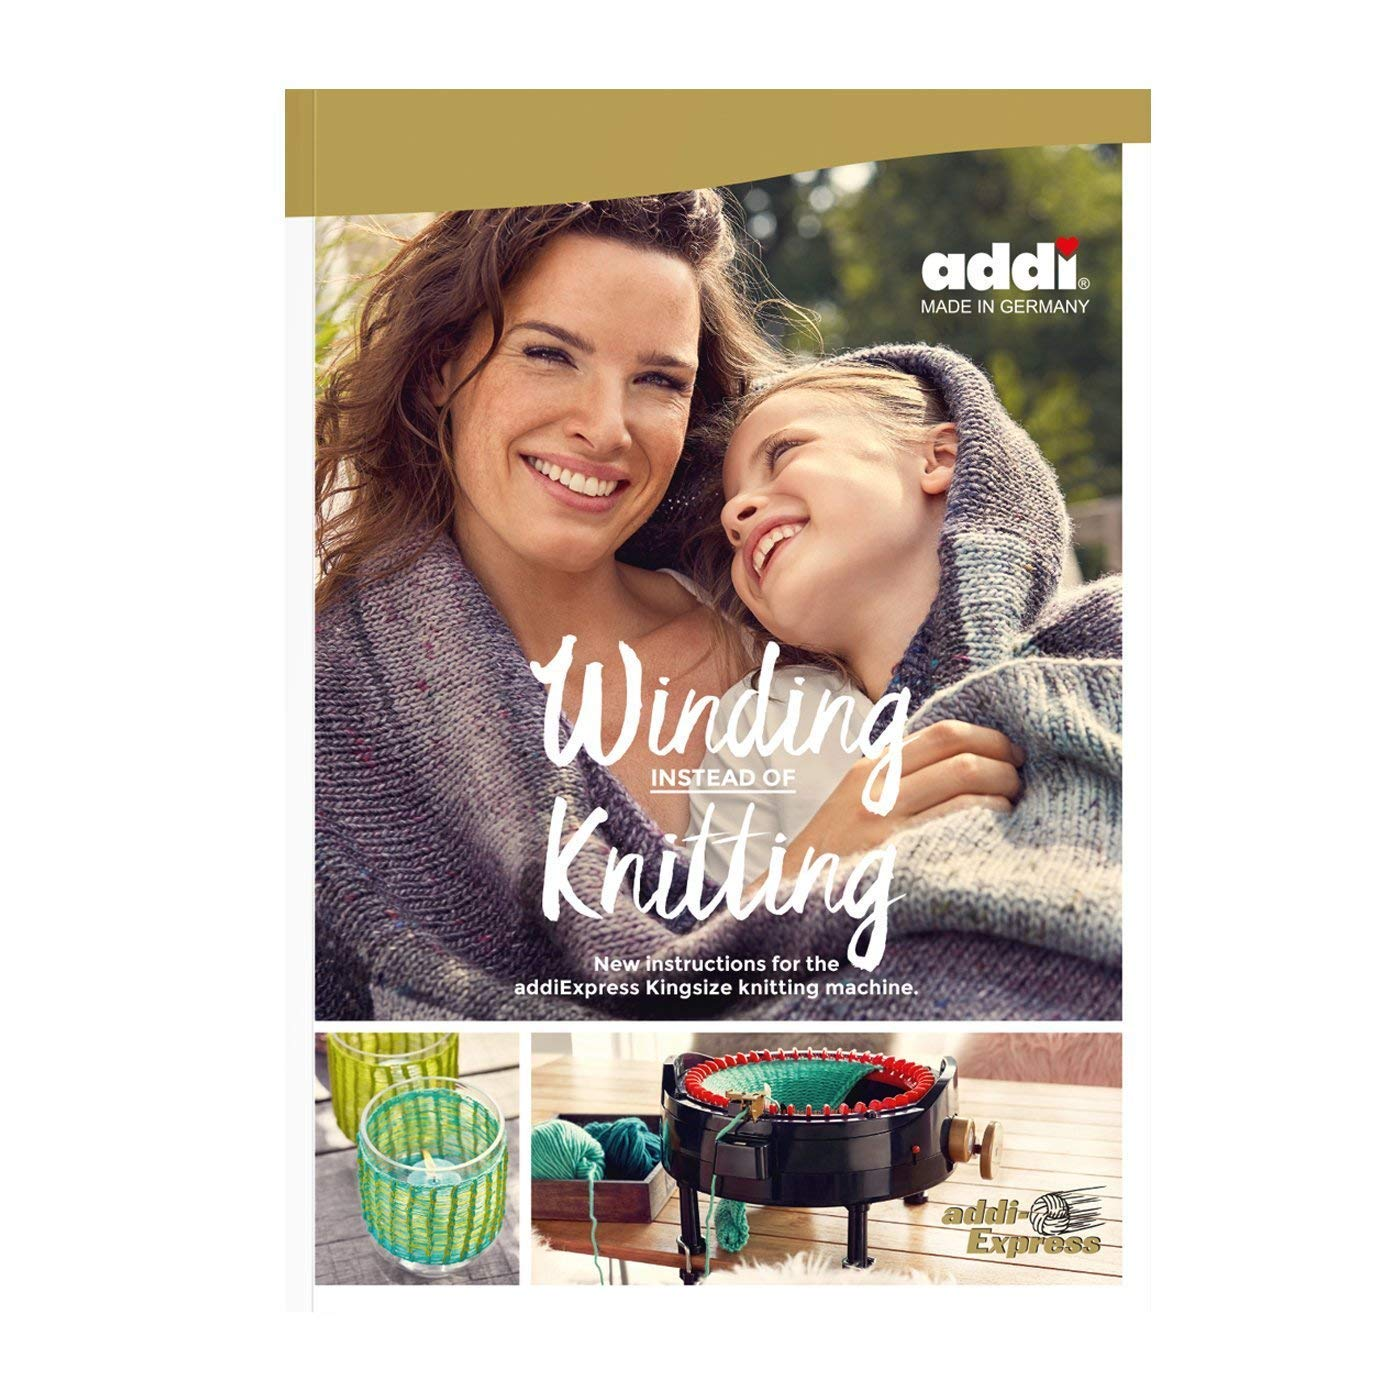 addi Express King Size Knitting Machine Extended Edition with Manual Counter Includes: 46 Needles, Knitting Machine, Pattern Book, Express Hook, Replacement Needles, Stopper and 2 Skeins Wool Yarn by addi (Image #3)